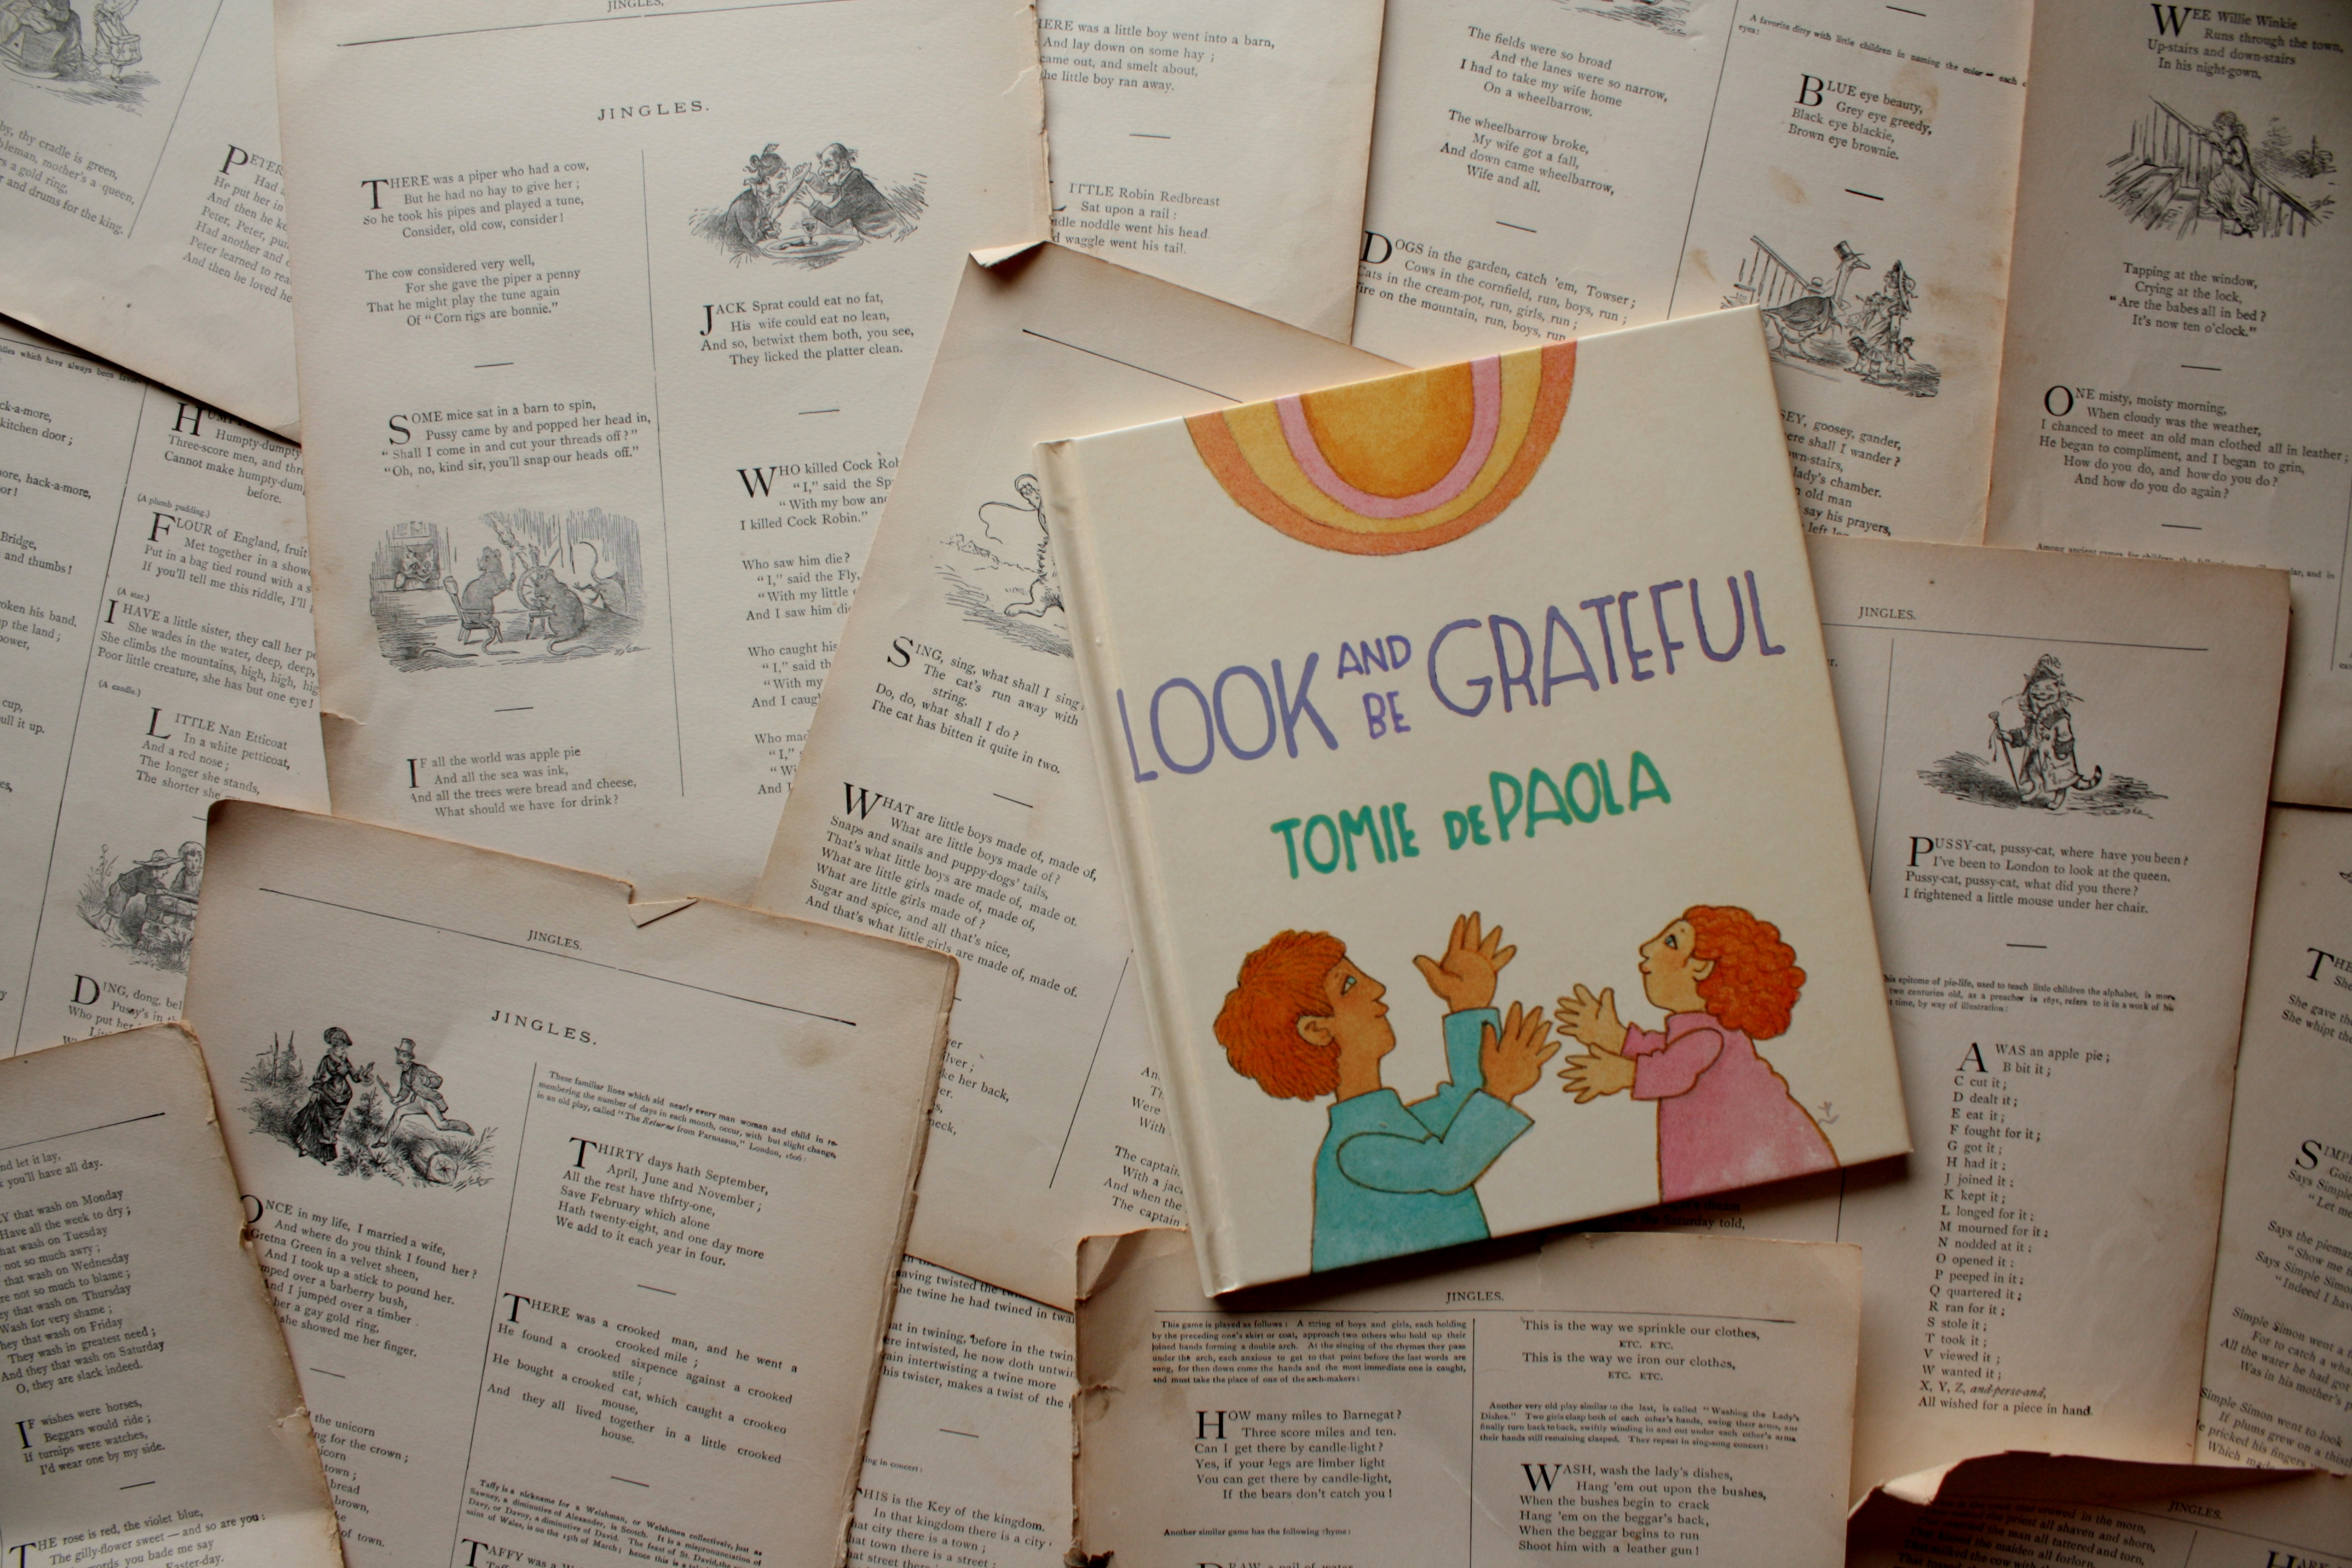 Look and Be Grateful | Tomie dePaola